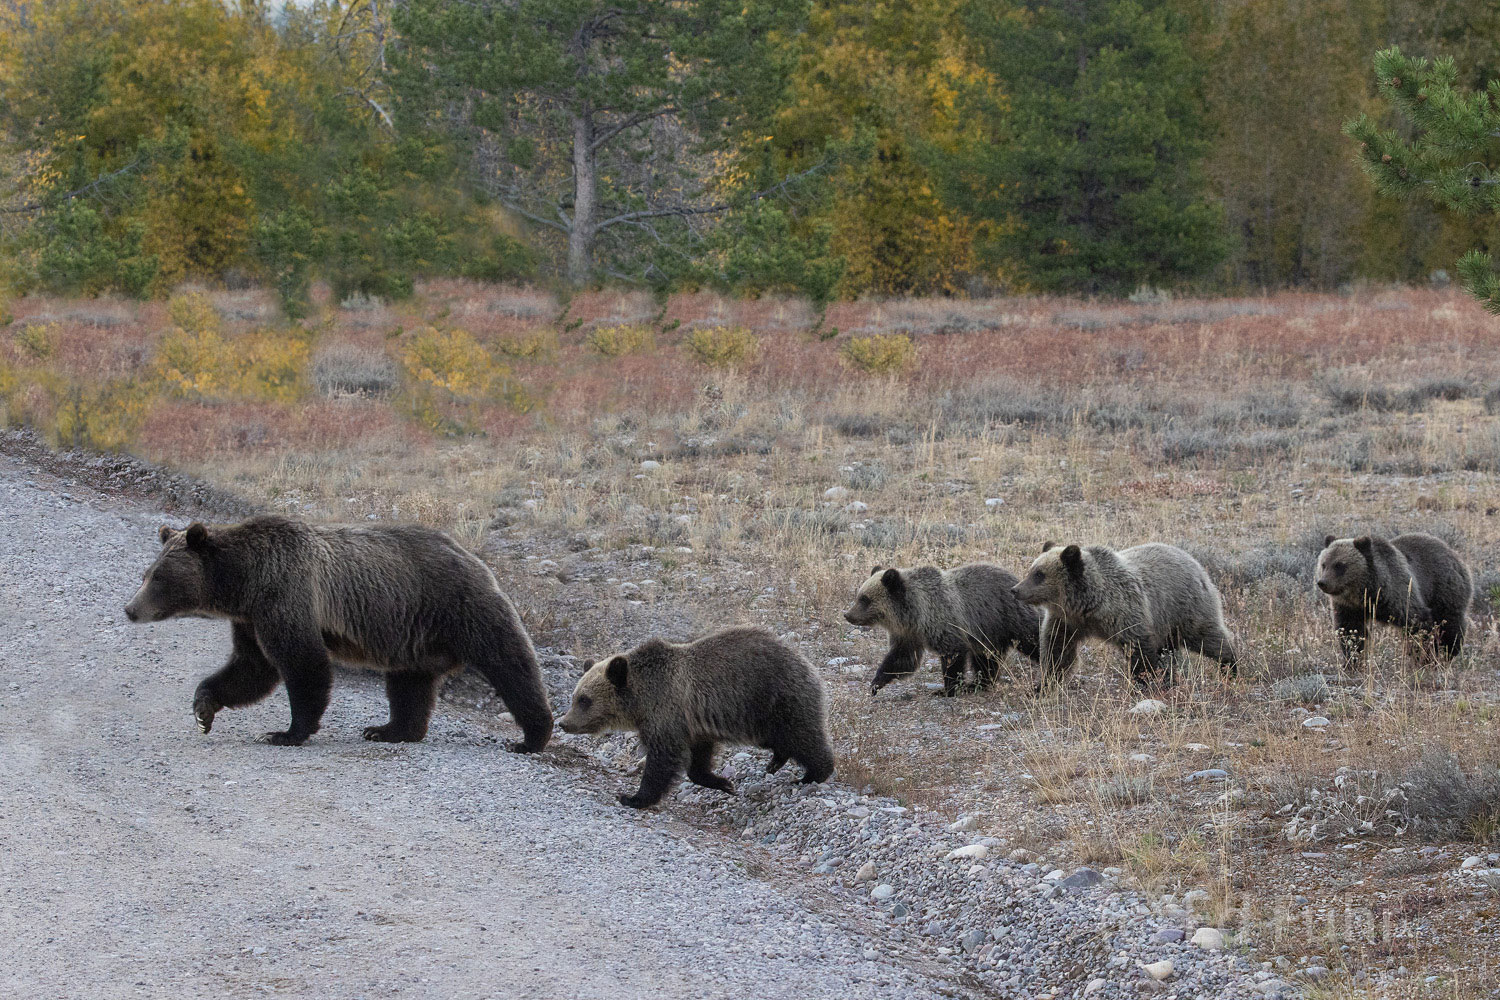 Grizzly 399 and her four cubs cross Pilgrim road.  Over the summer months 399 has led her cubs in a never ending search for food...